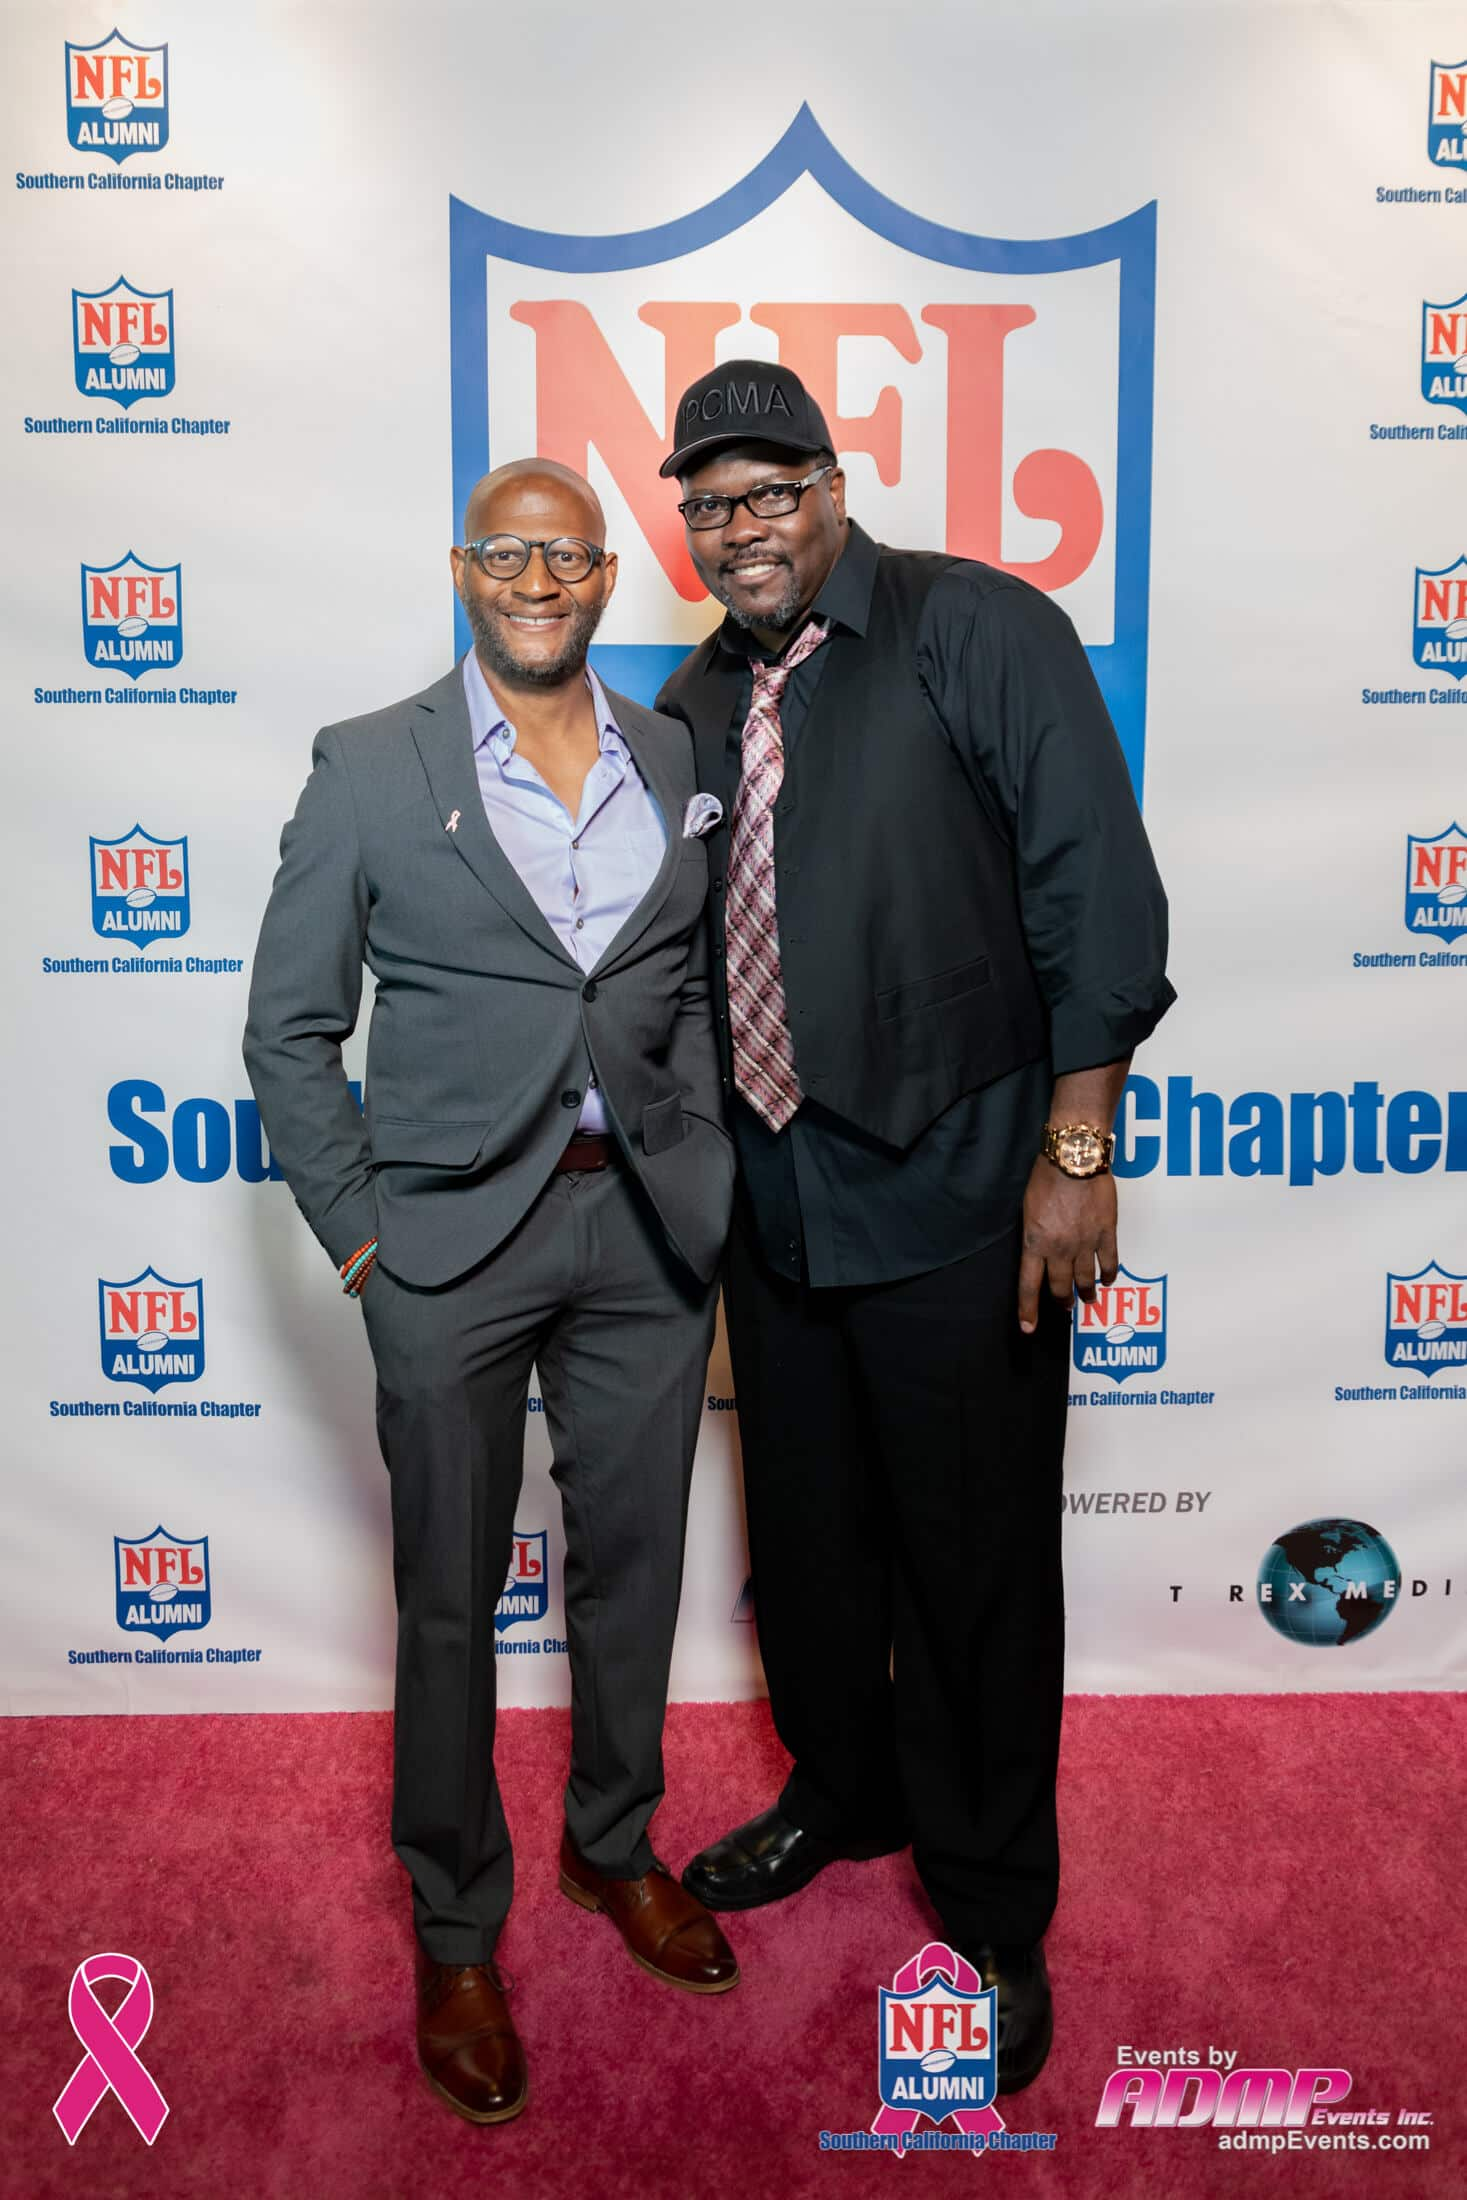 NFL Alumni SoCal Charity Event Series Breast Cancer Event 10-14-19-254